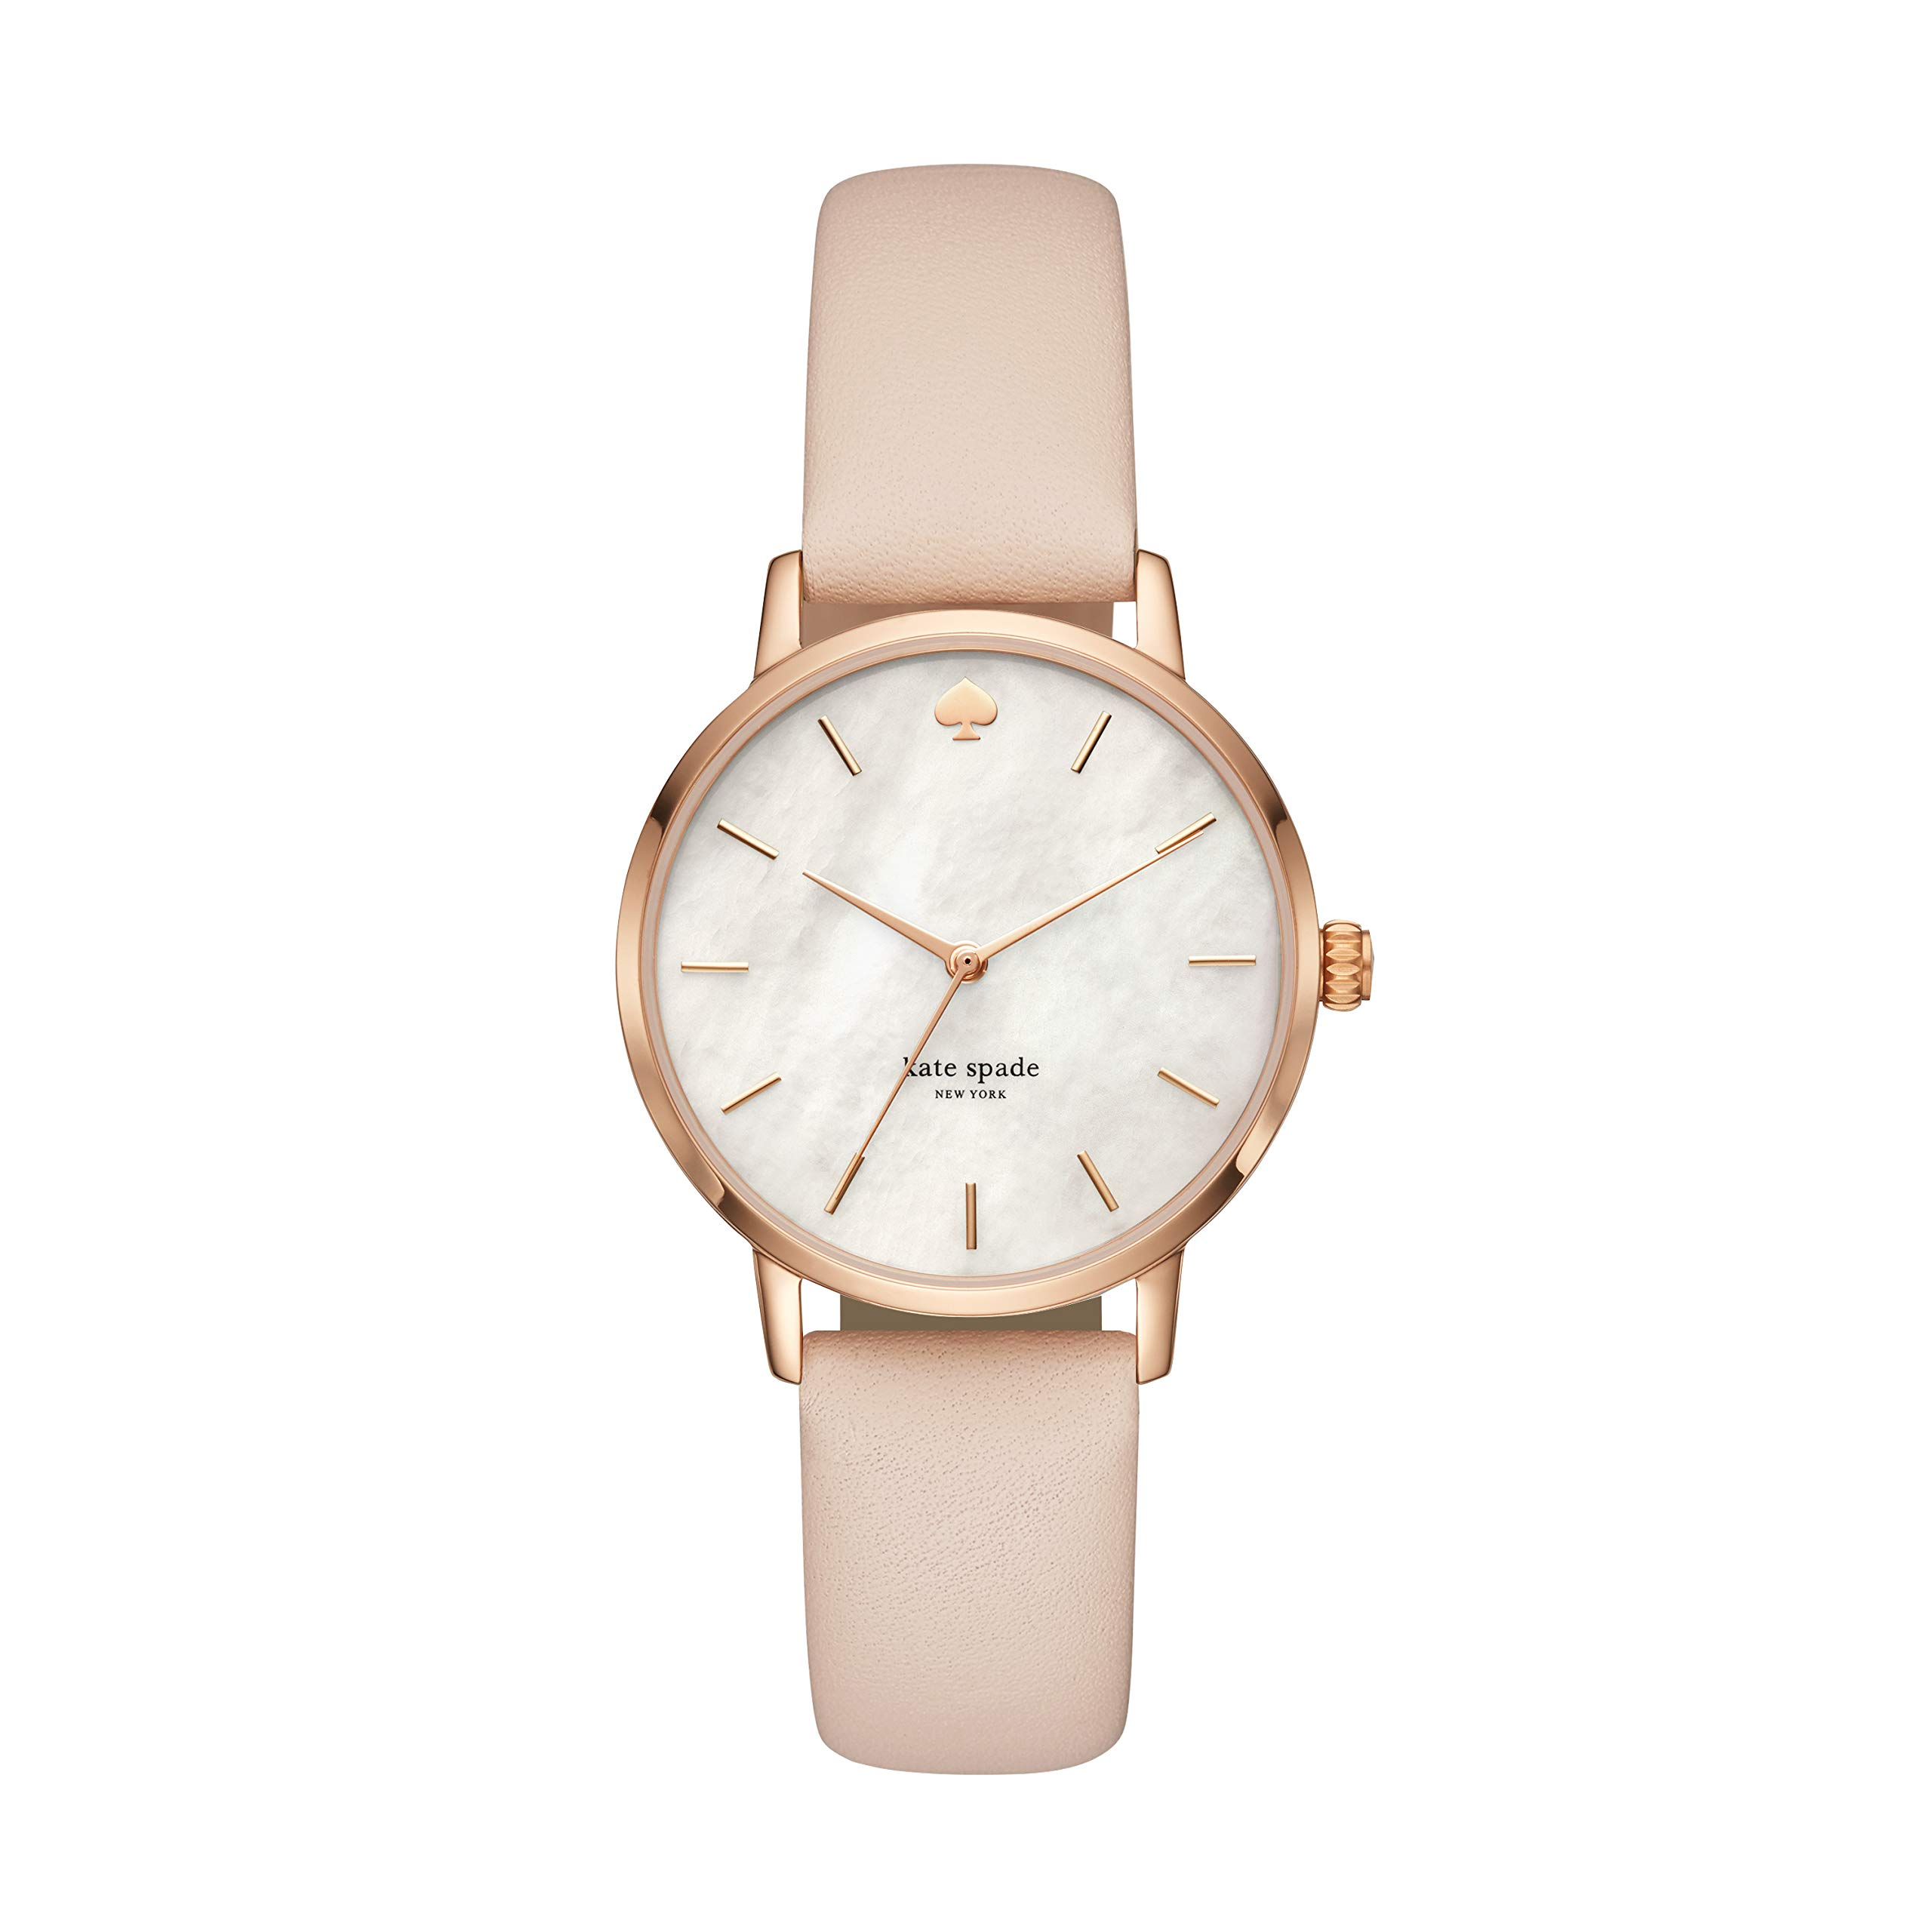 Kate Spade Women's Metro Stainless Steel Analog-Quartz Watch with Leather Calfskin Strap, Beige, 16 (Model: KSW1403) by Kate Spade New York